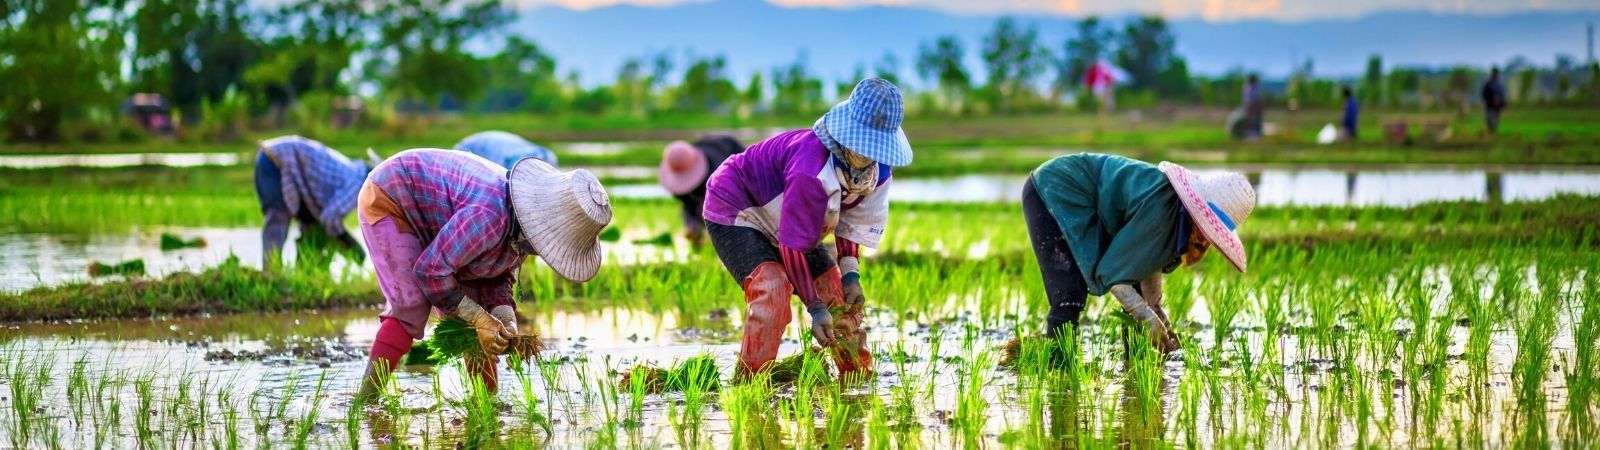 Workers working on a rice farm ankle deep in water with beautiful mountains in the background.